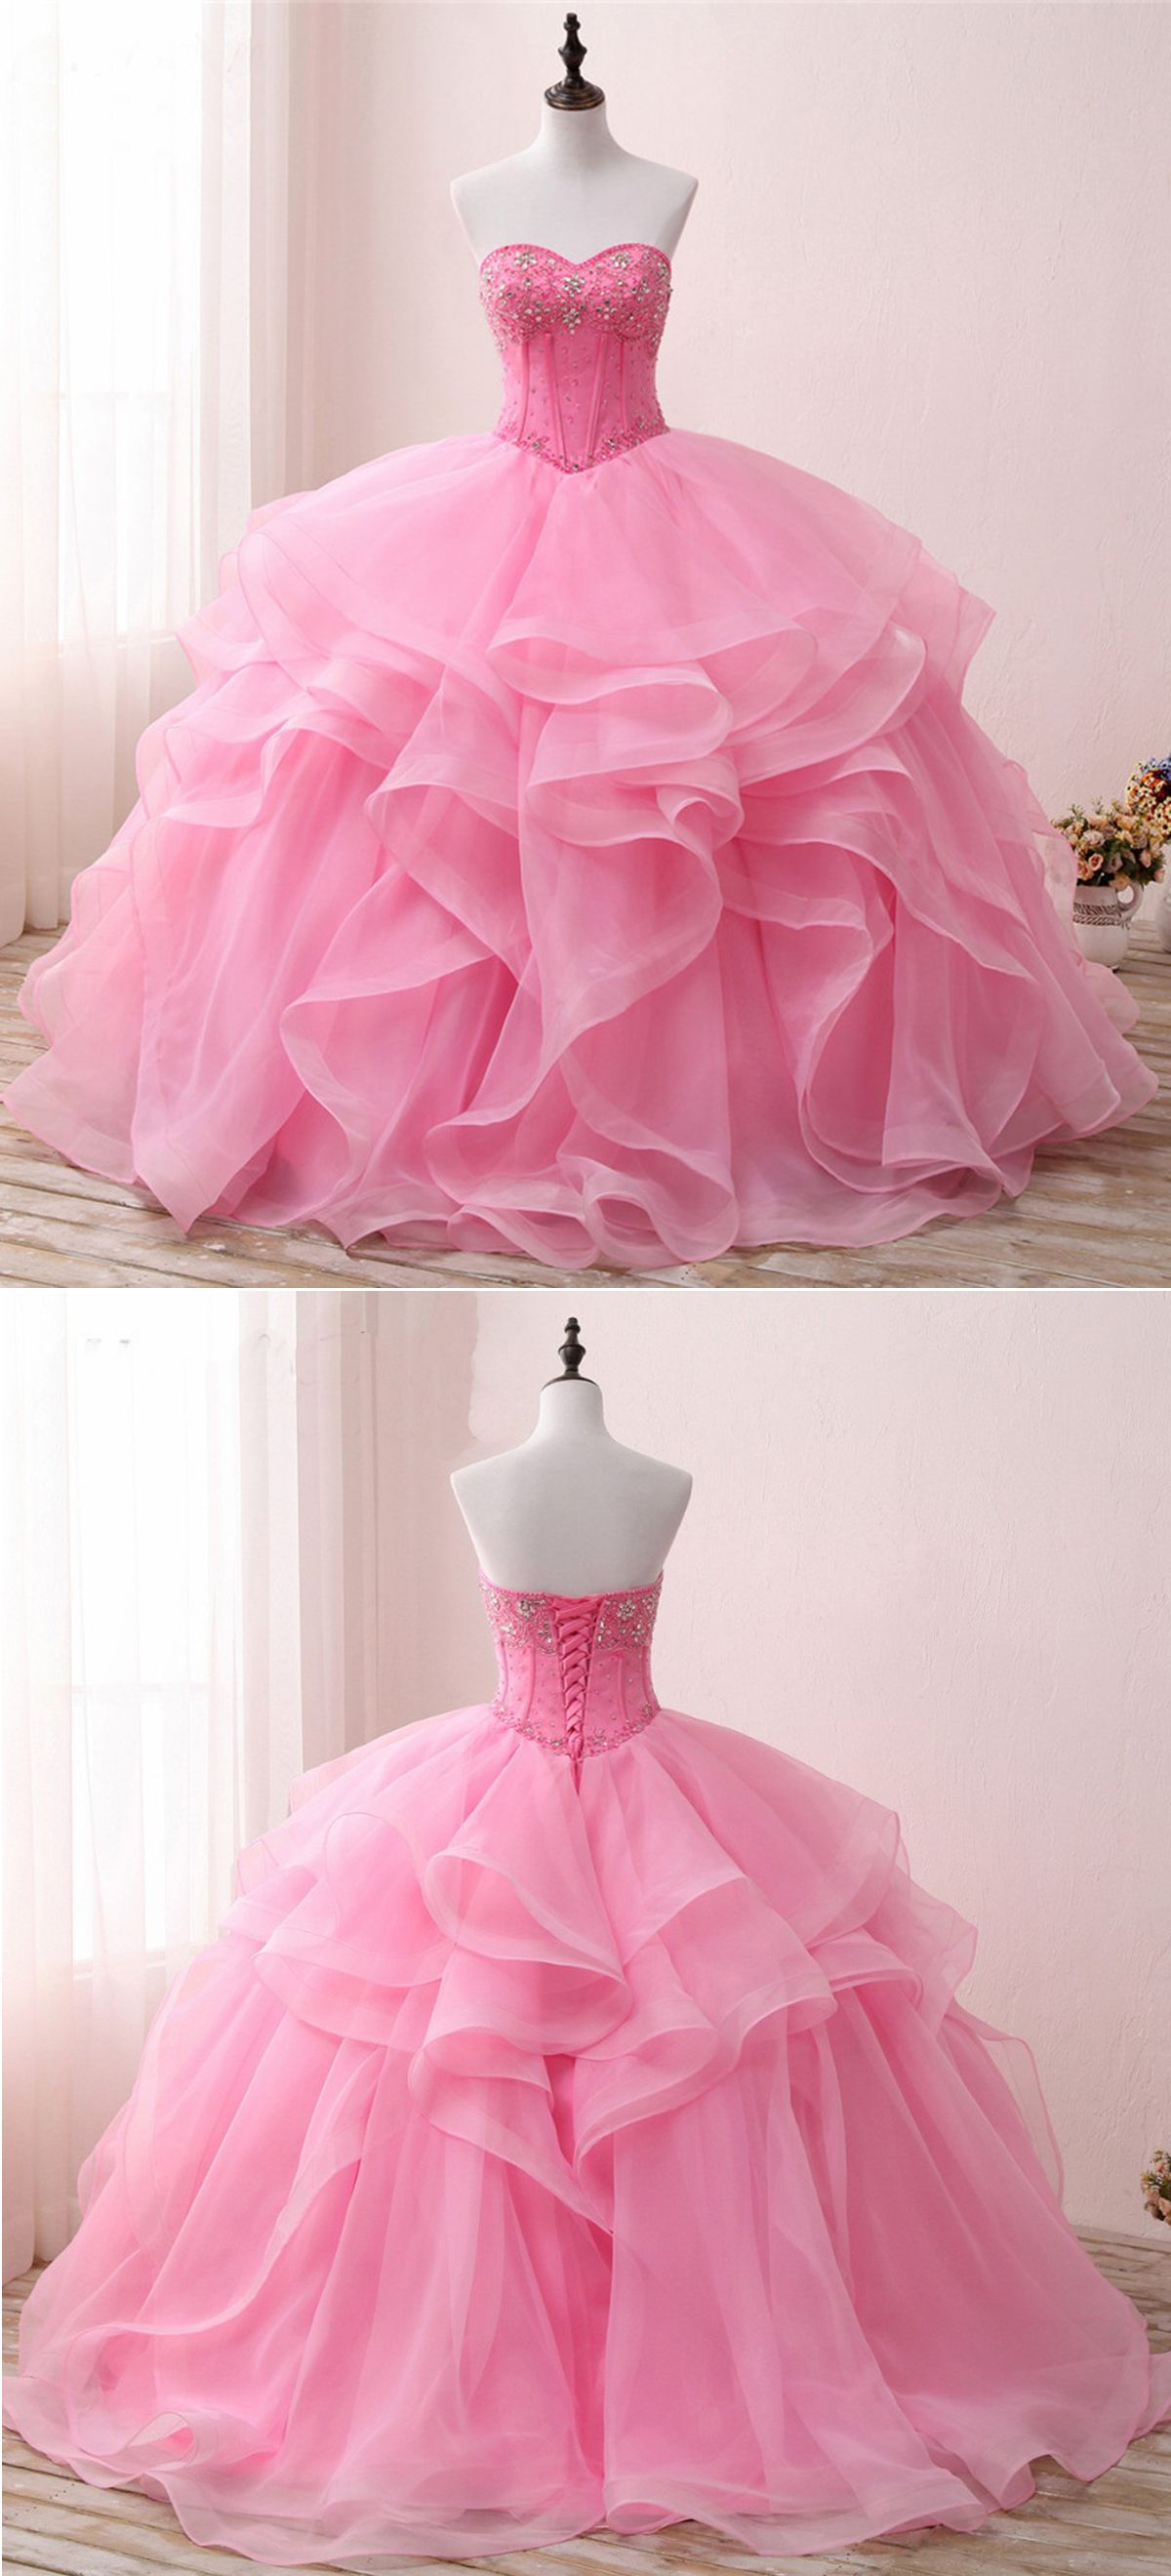 Beaded pink tulle poofy evening gown | Para XV | Pinterest ...